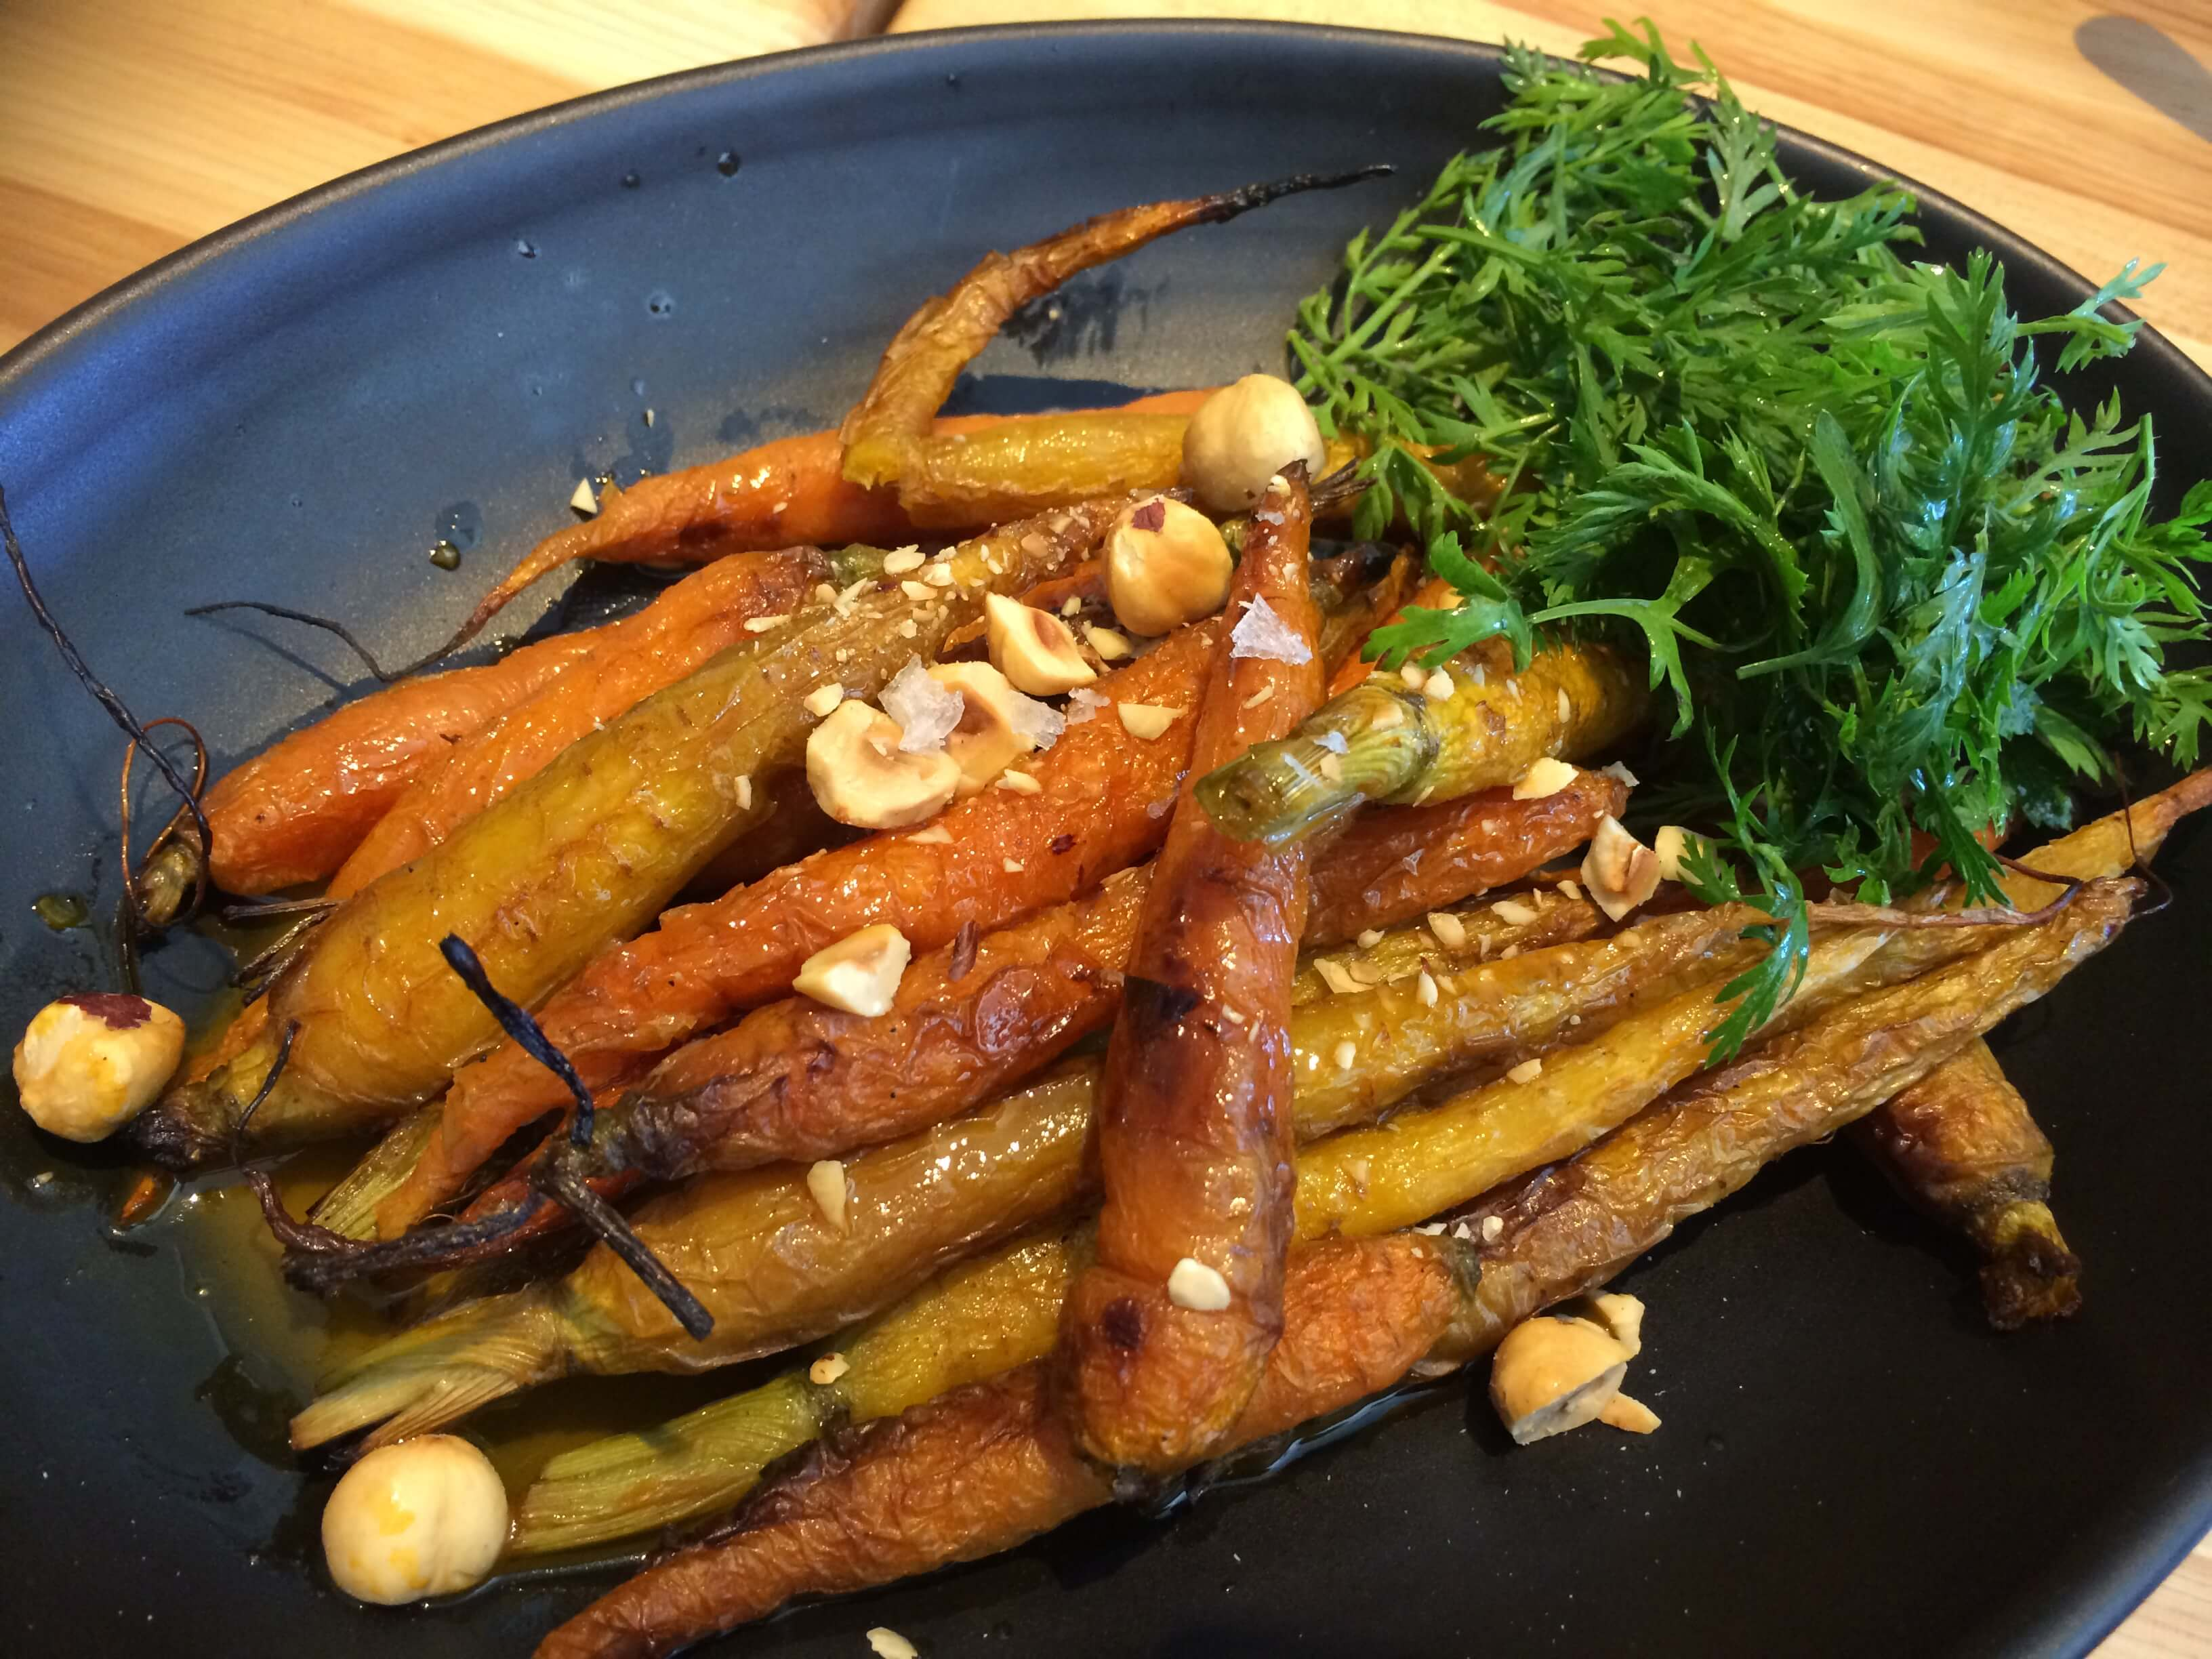 Roasted Carrots, Chamomile Carrot Jus, Carrot Top Salad, Hazelnuts